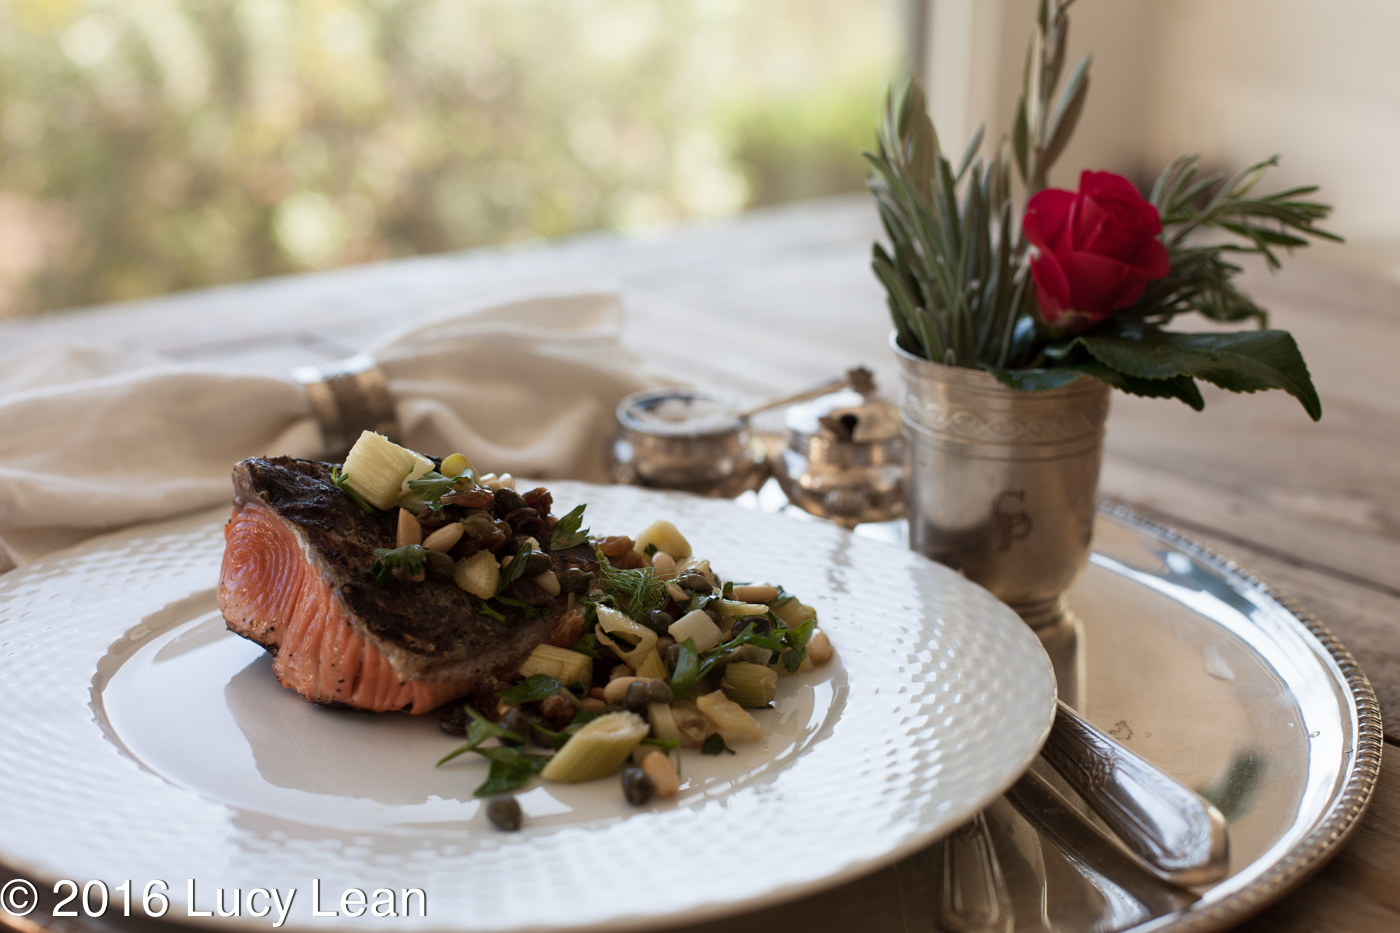 Lean Luxury Grilled Salmon and Pine Nuts inspired by Ottolenghi Bridget Jones